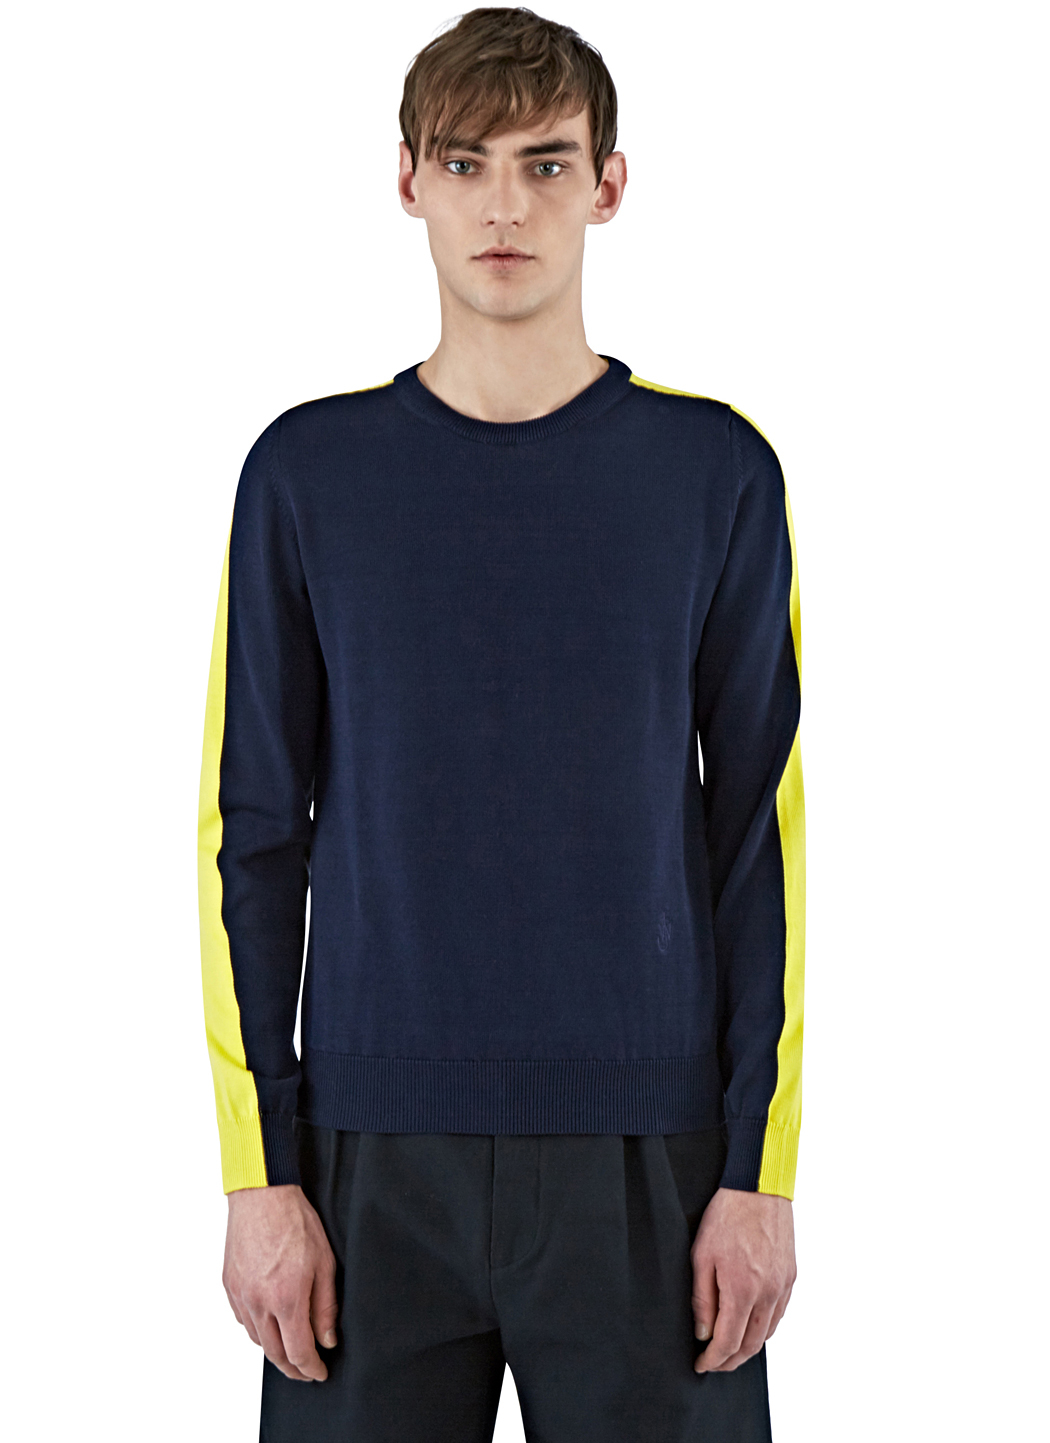 J.w.anderson Men's Bi-colour Crew Neck Sweater In Navy And Yellow ...